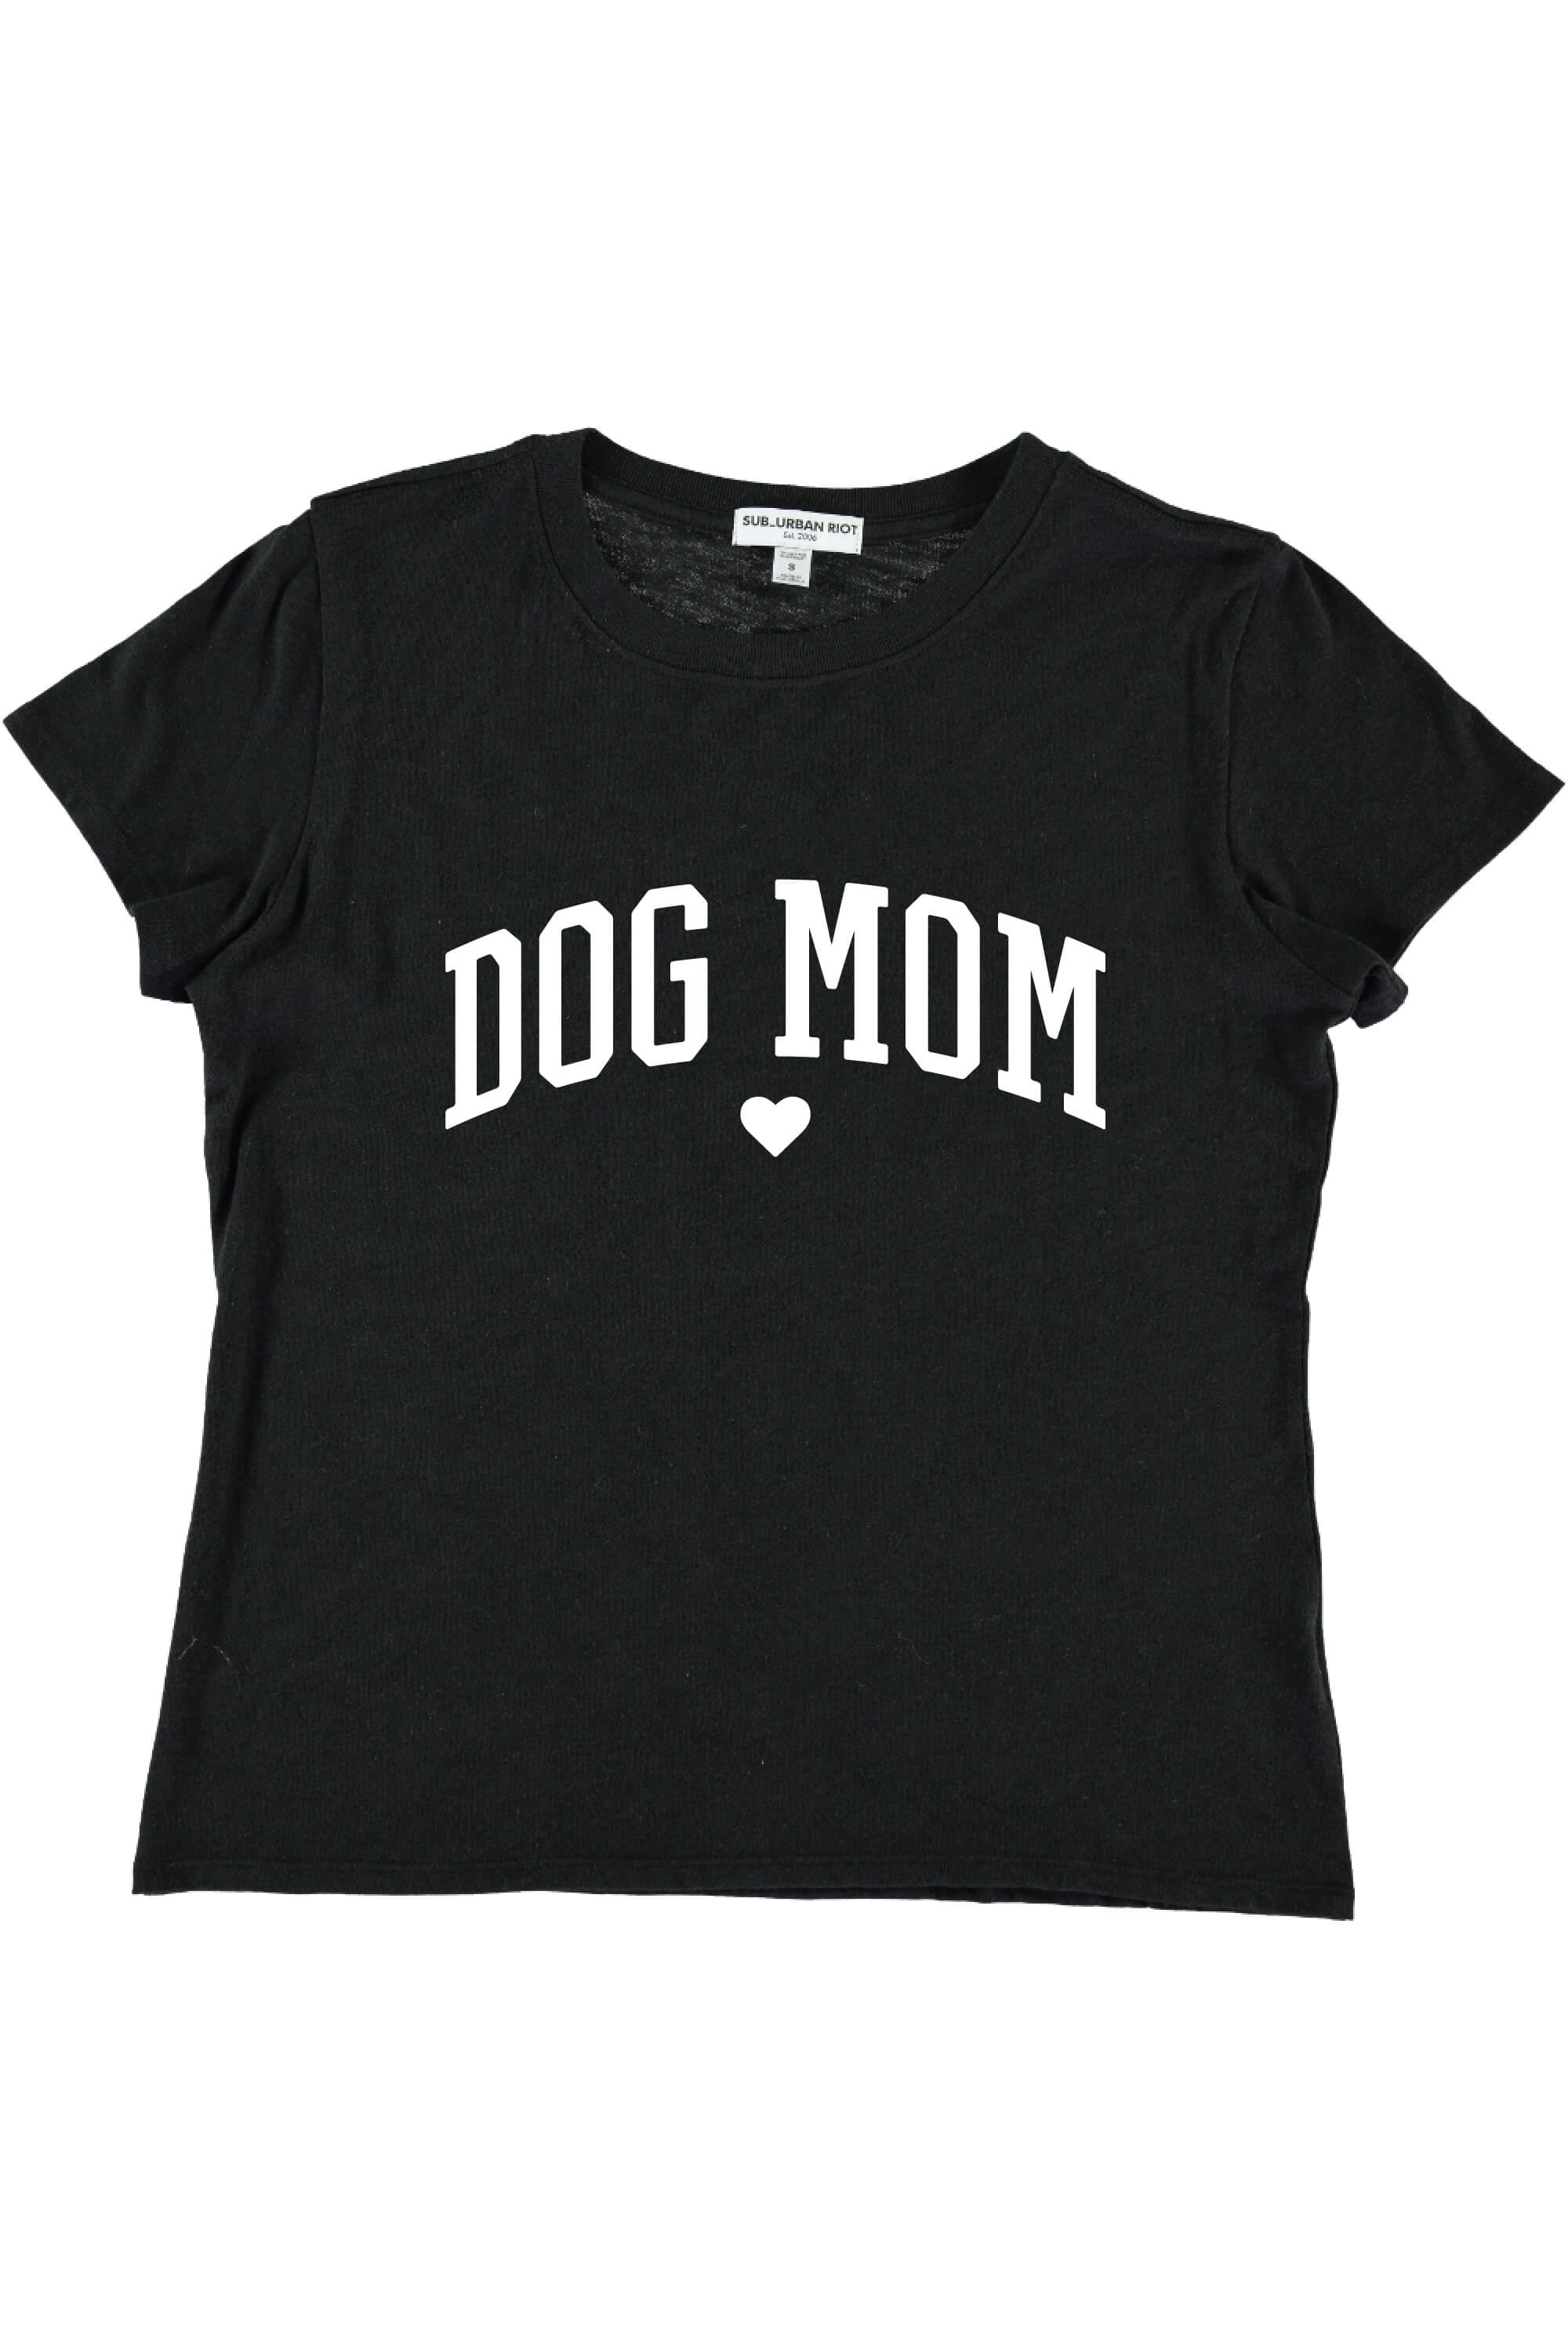 DOG MOM YOUTH SIZE LOOSE TEE